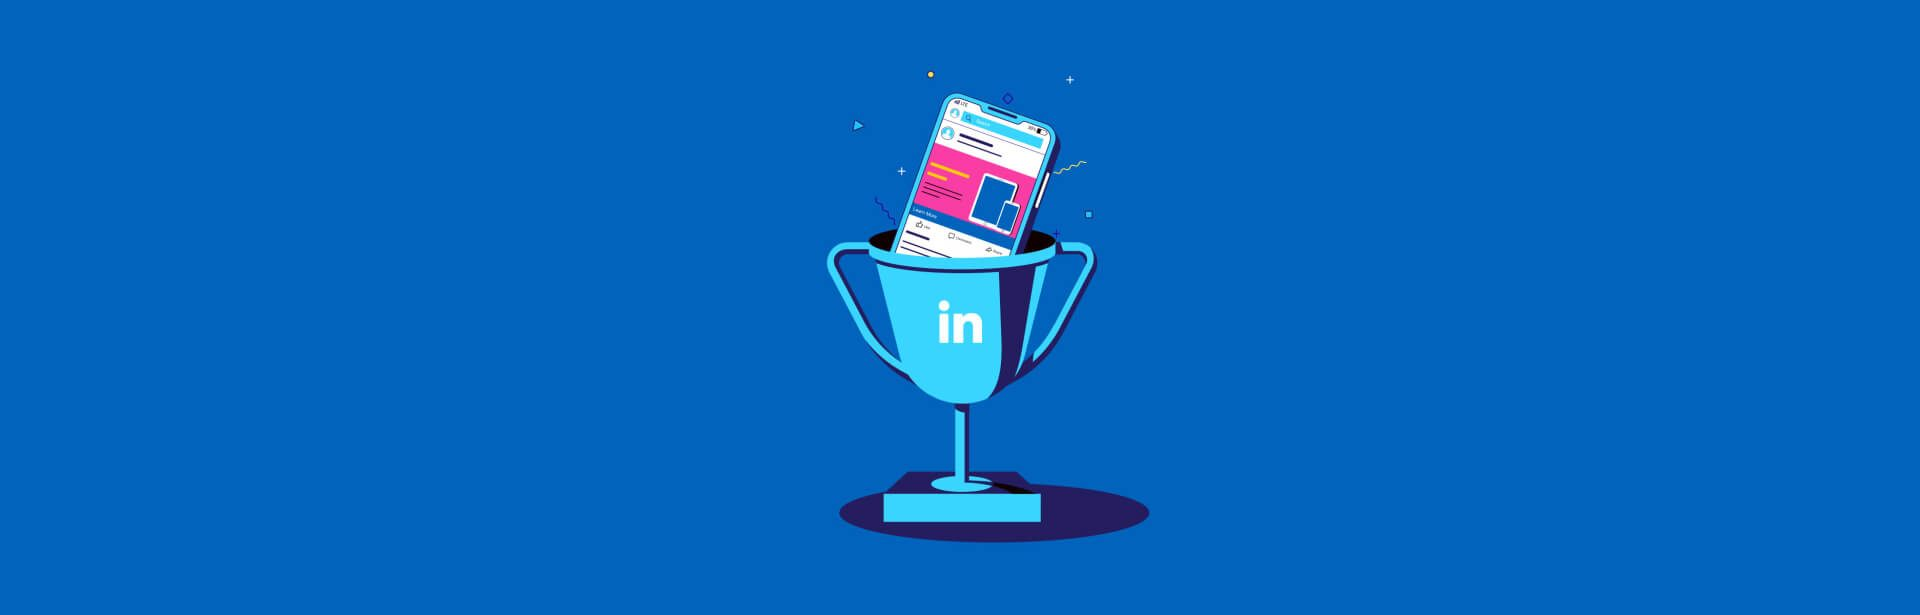 The Ultimate Guide to Successful LinkedIn Video Ads